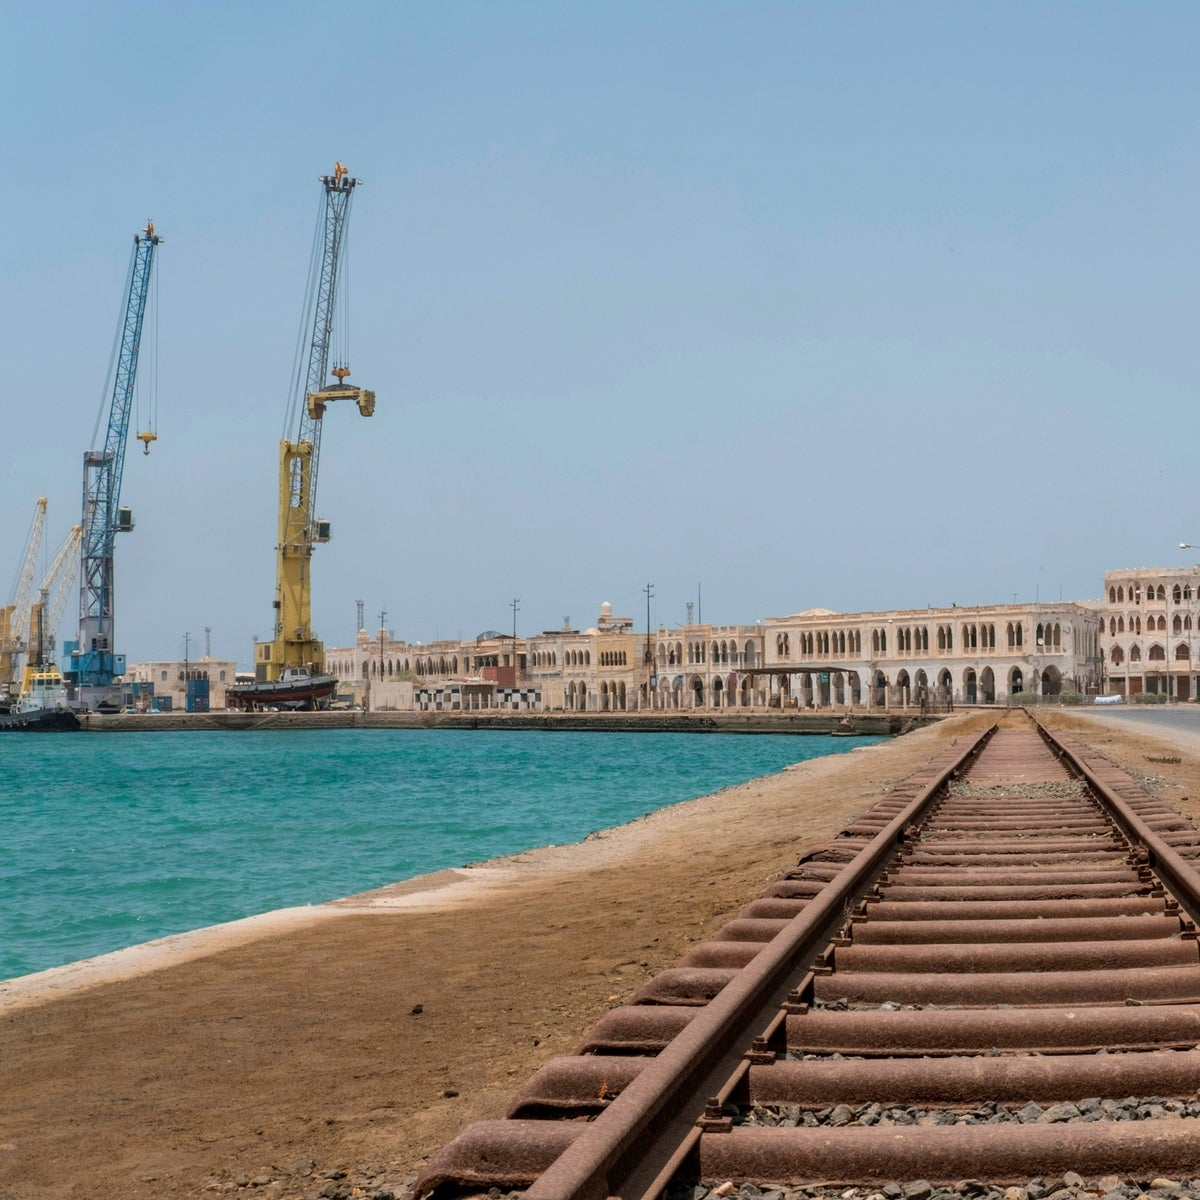 A photo taken on July 22, 2018 shows a general view of Old Massawa with the port and the train tracks that leads to the Eritrean capital Asmara.